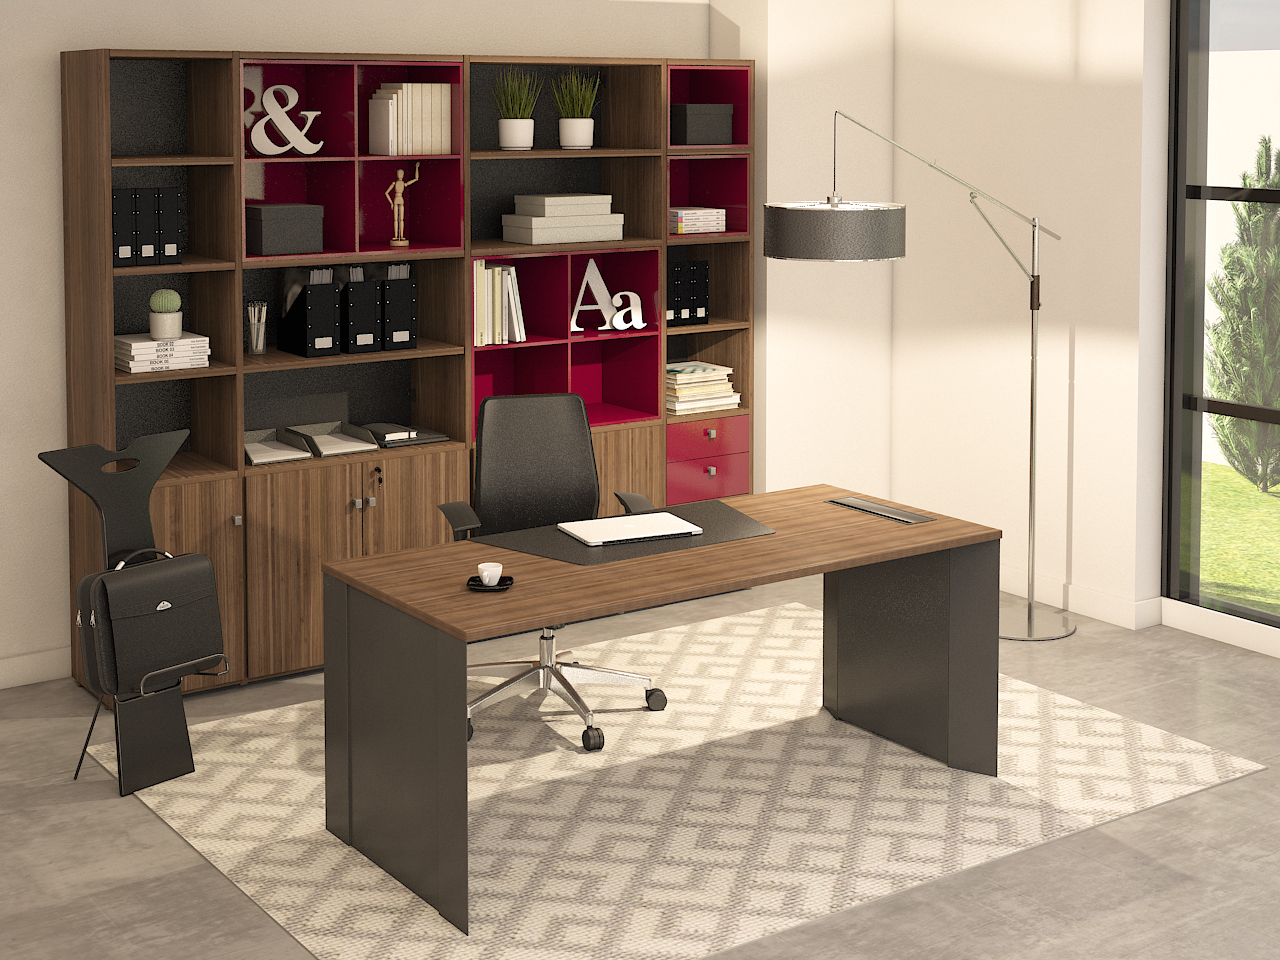 4U Office - Linha Executiva Board